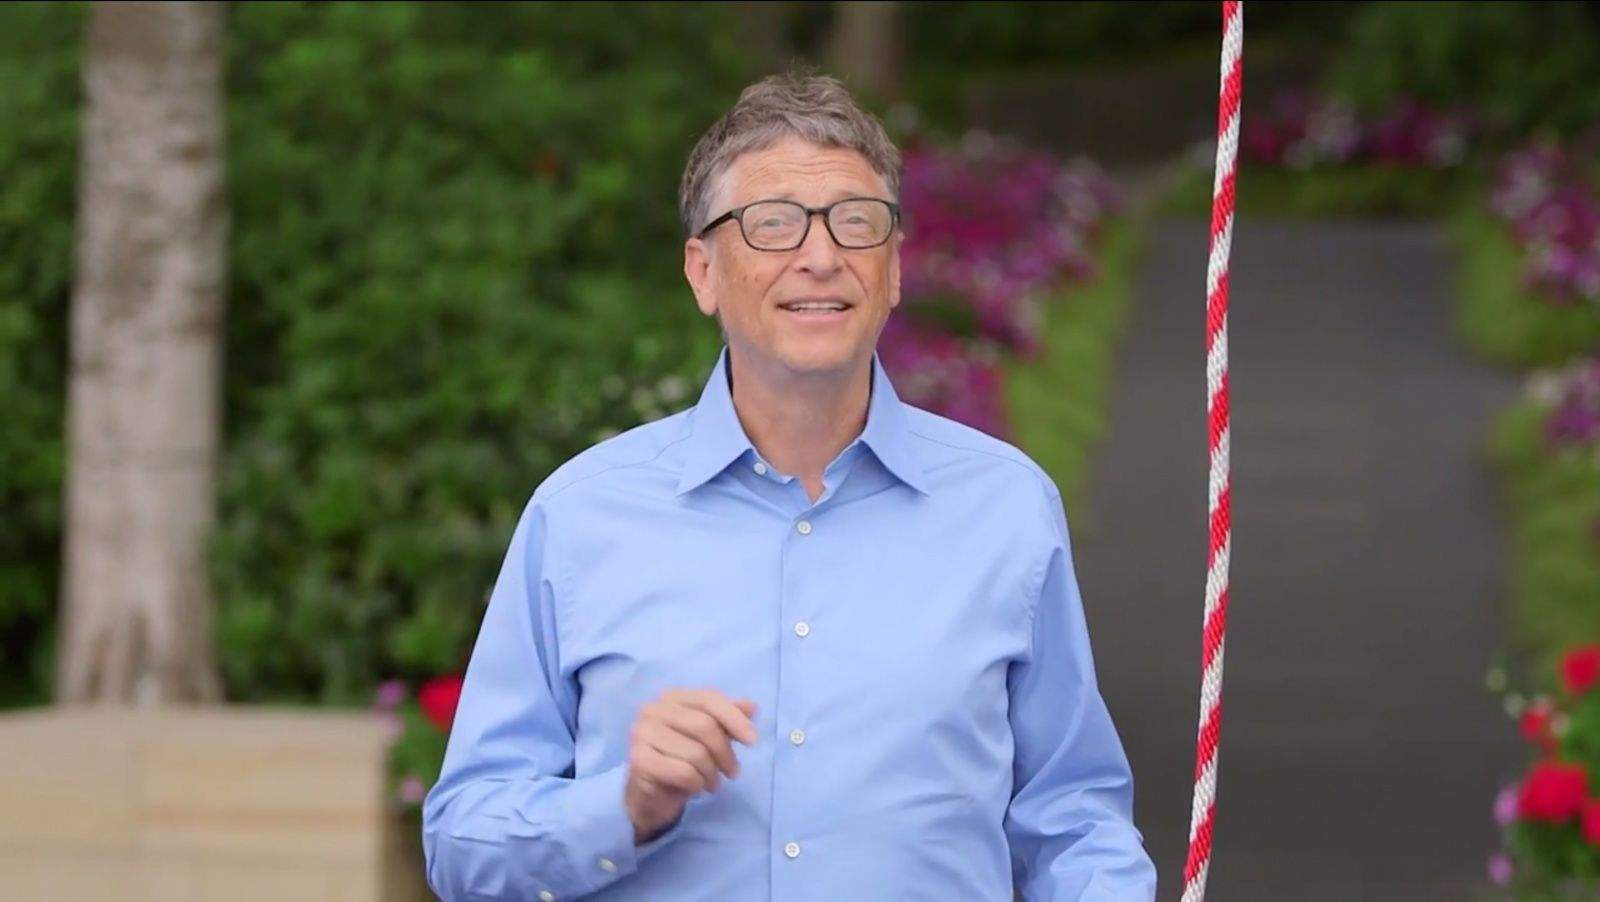 36 years on  you can play bill gates u0026 39  crappy donkey game